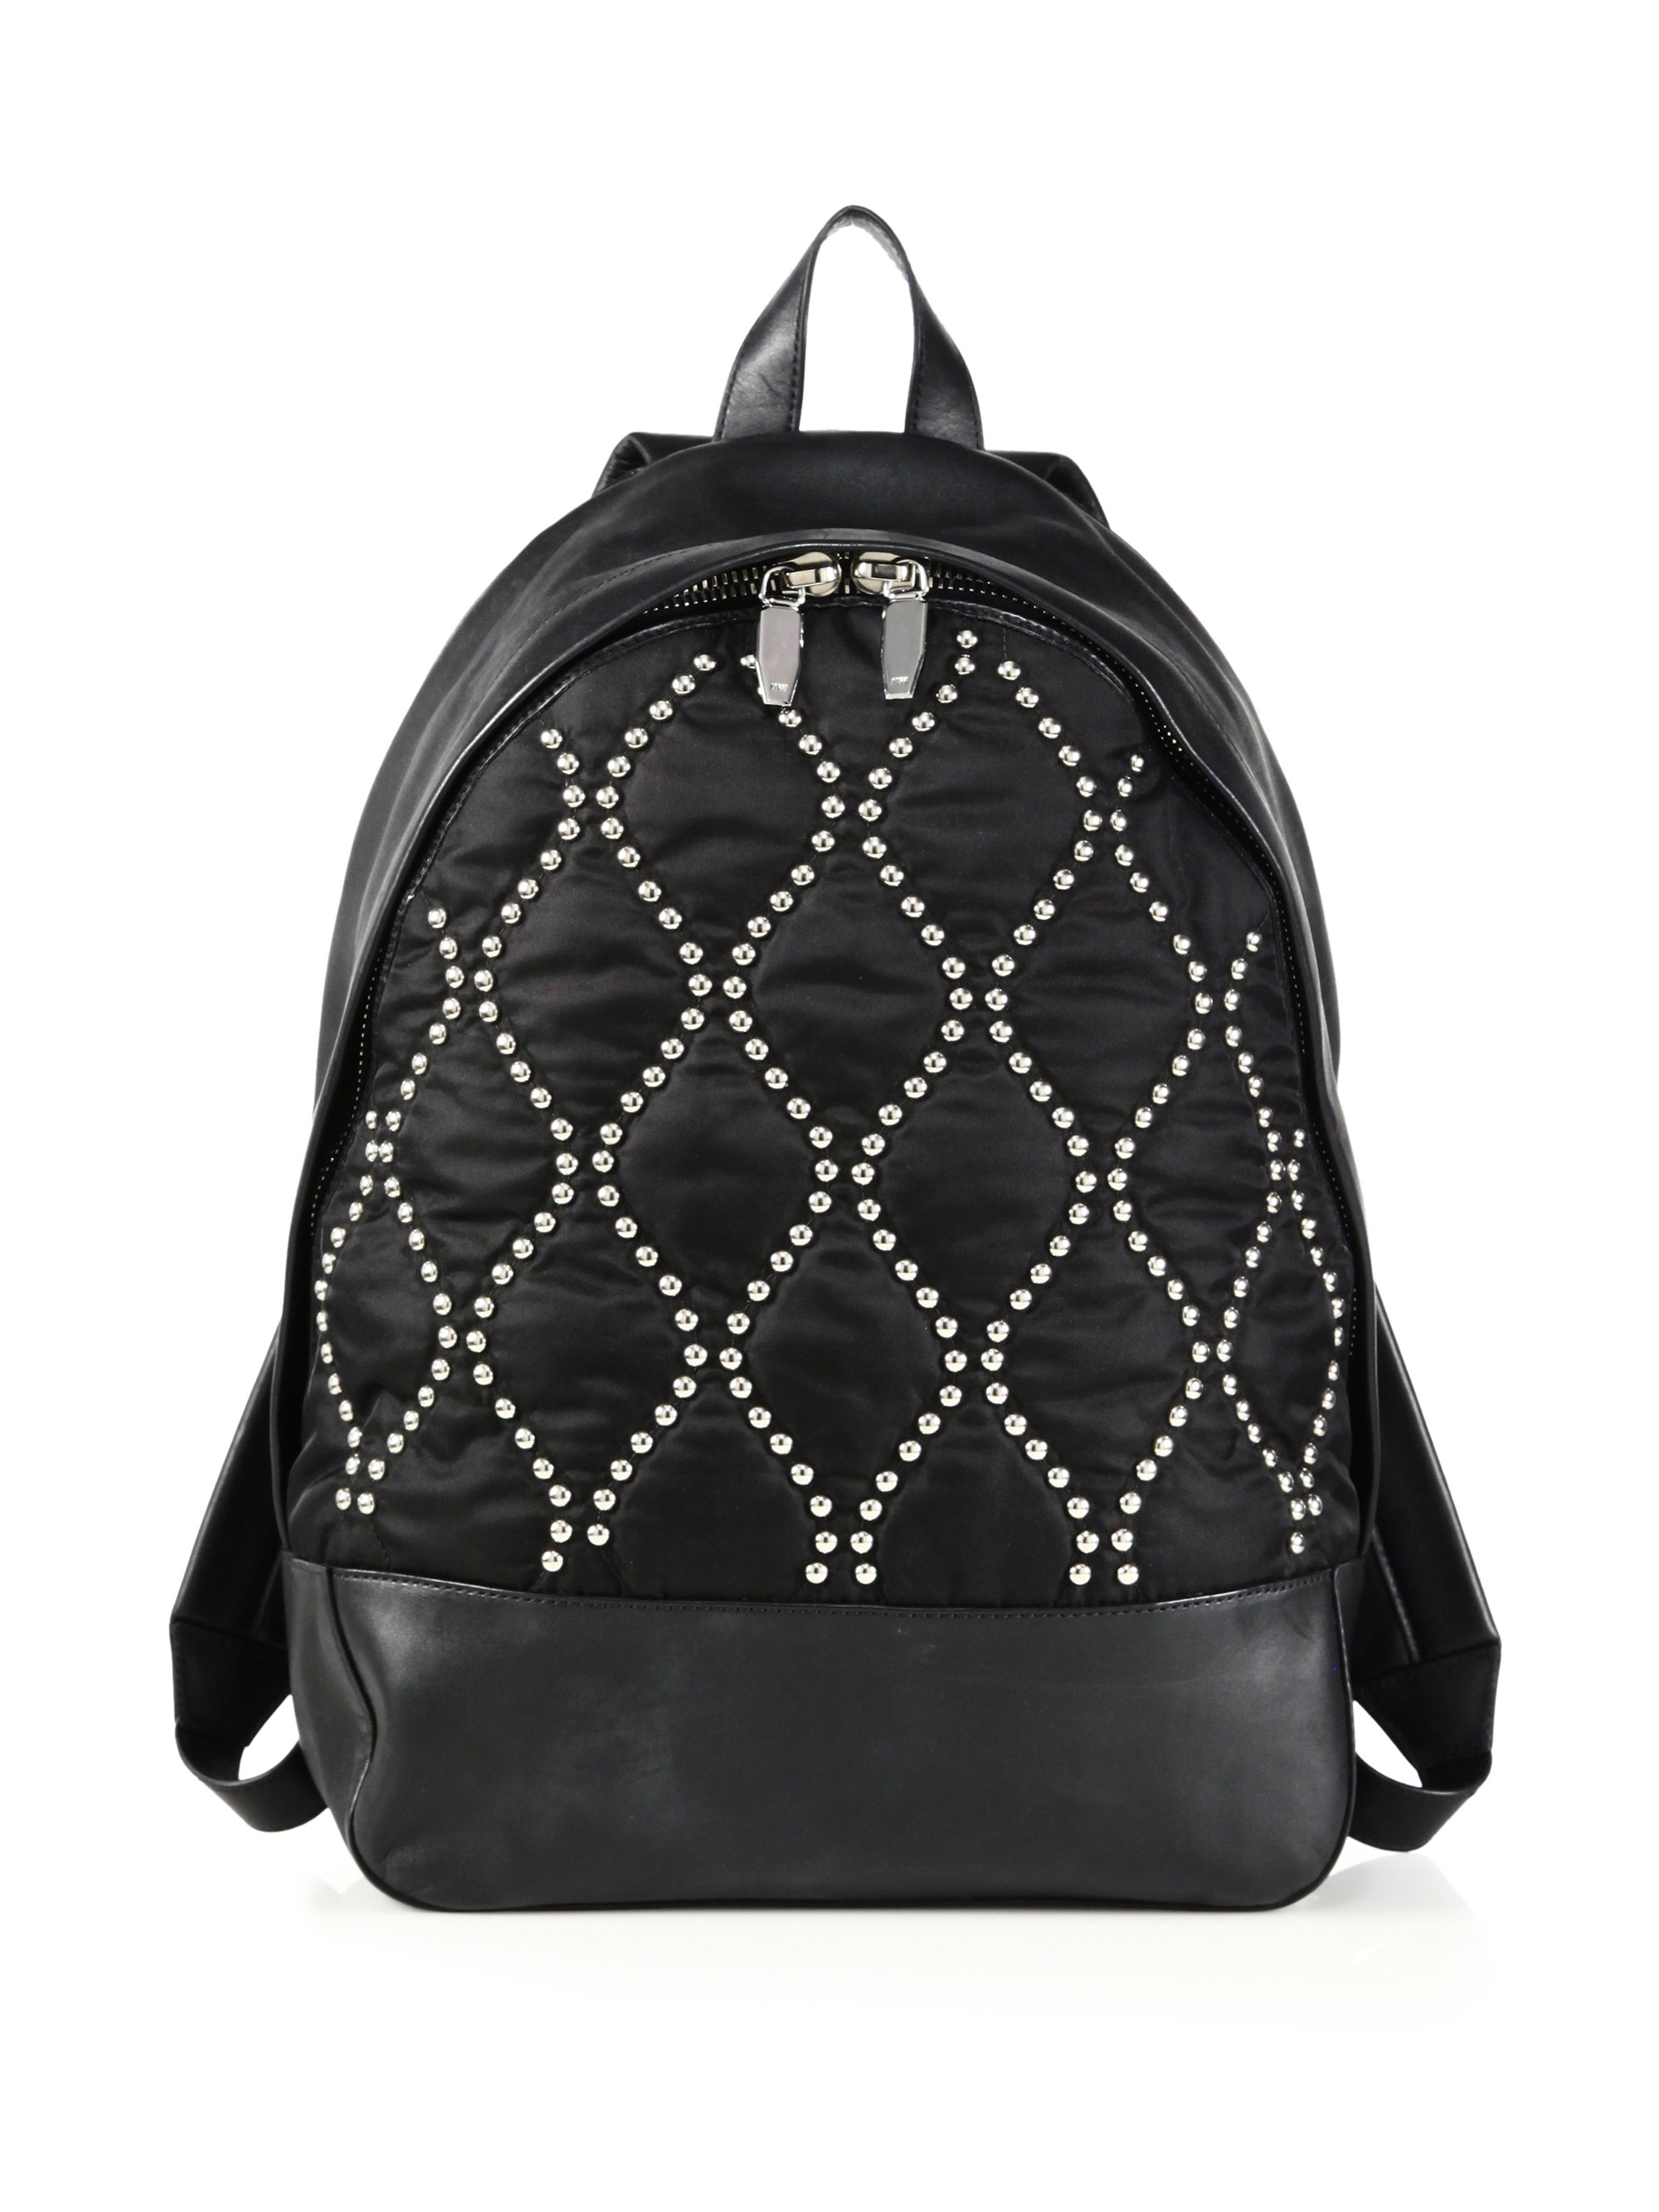 Alexander wang Runway Stud Quilted Nylon & Leather Backpack in ...